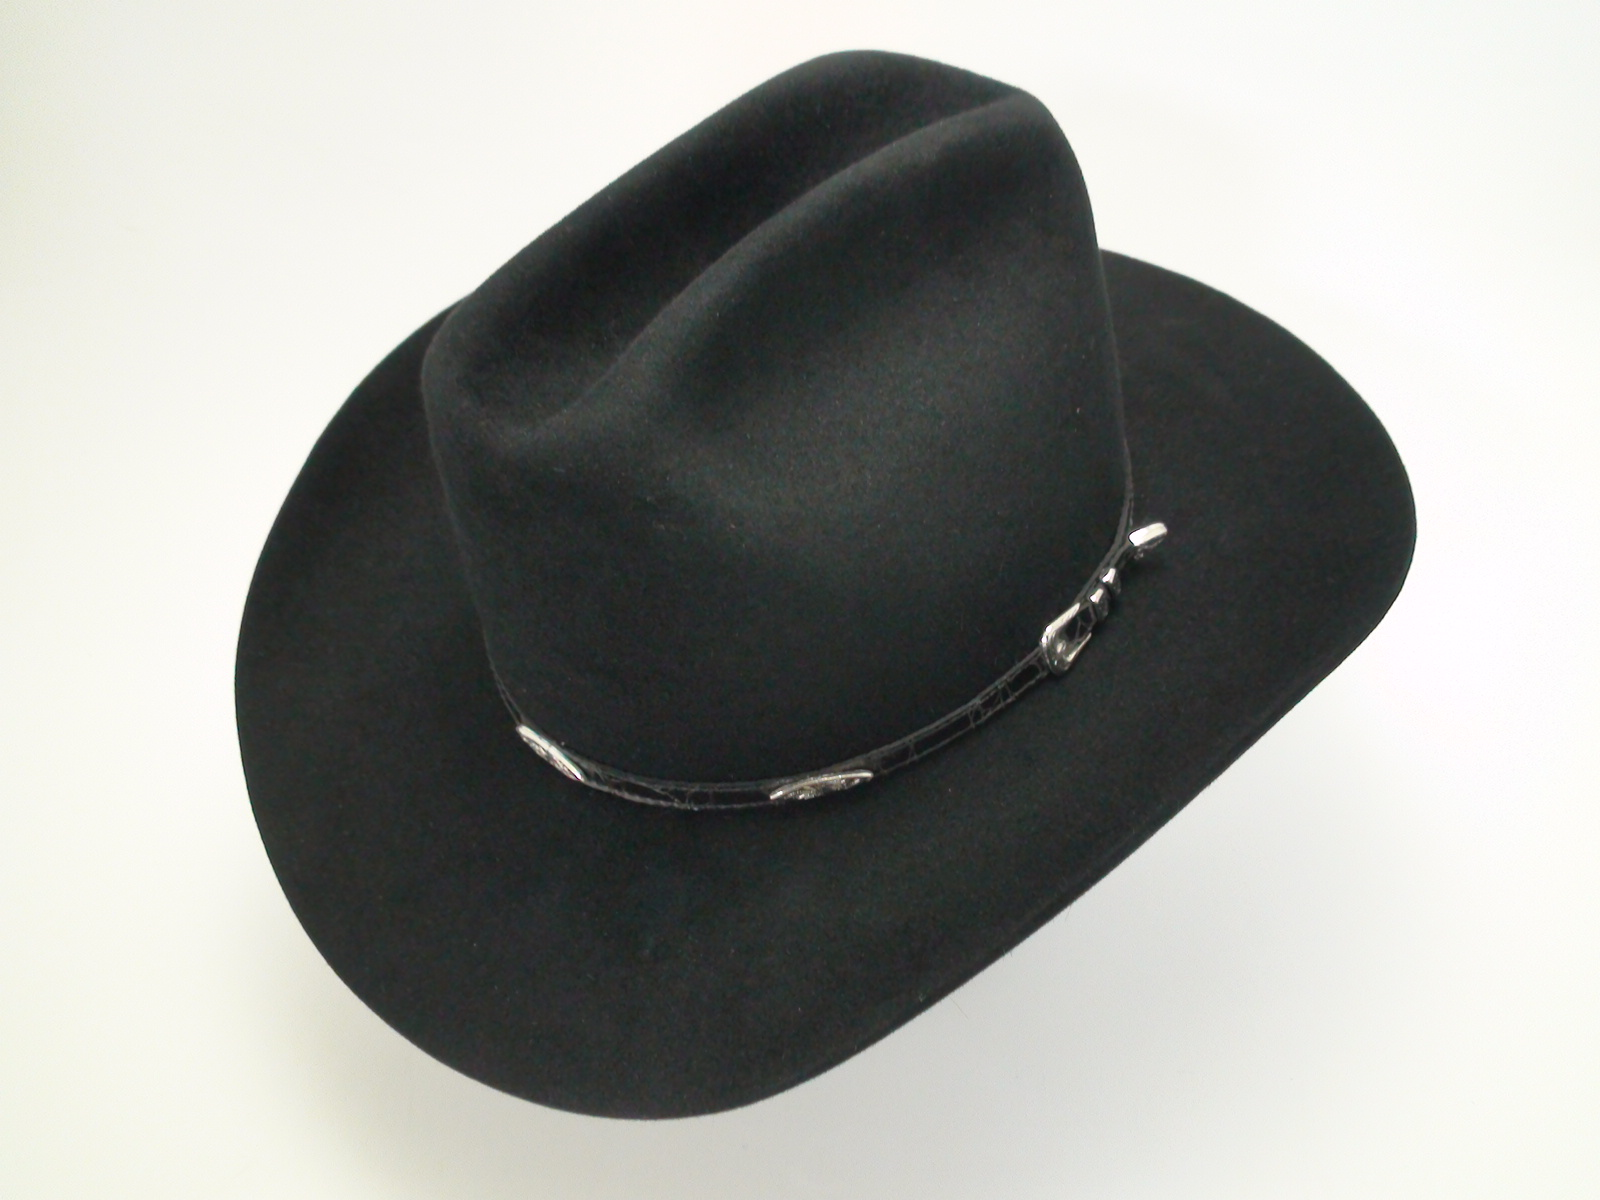 61eb70abddfc9 Latest Hat  Stetson Black Cowboy Hat - Bernard Hats